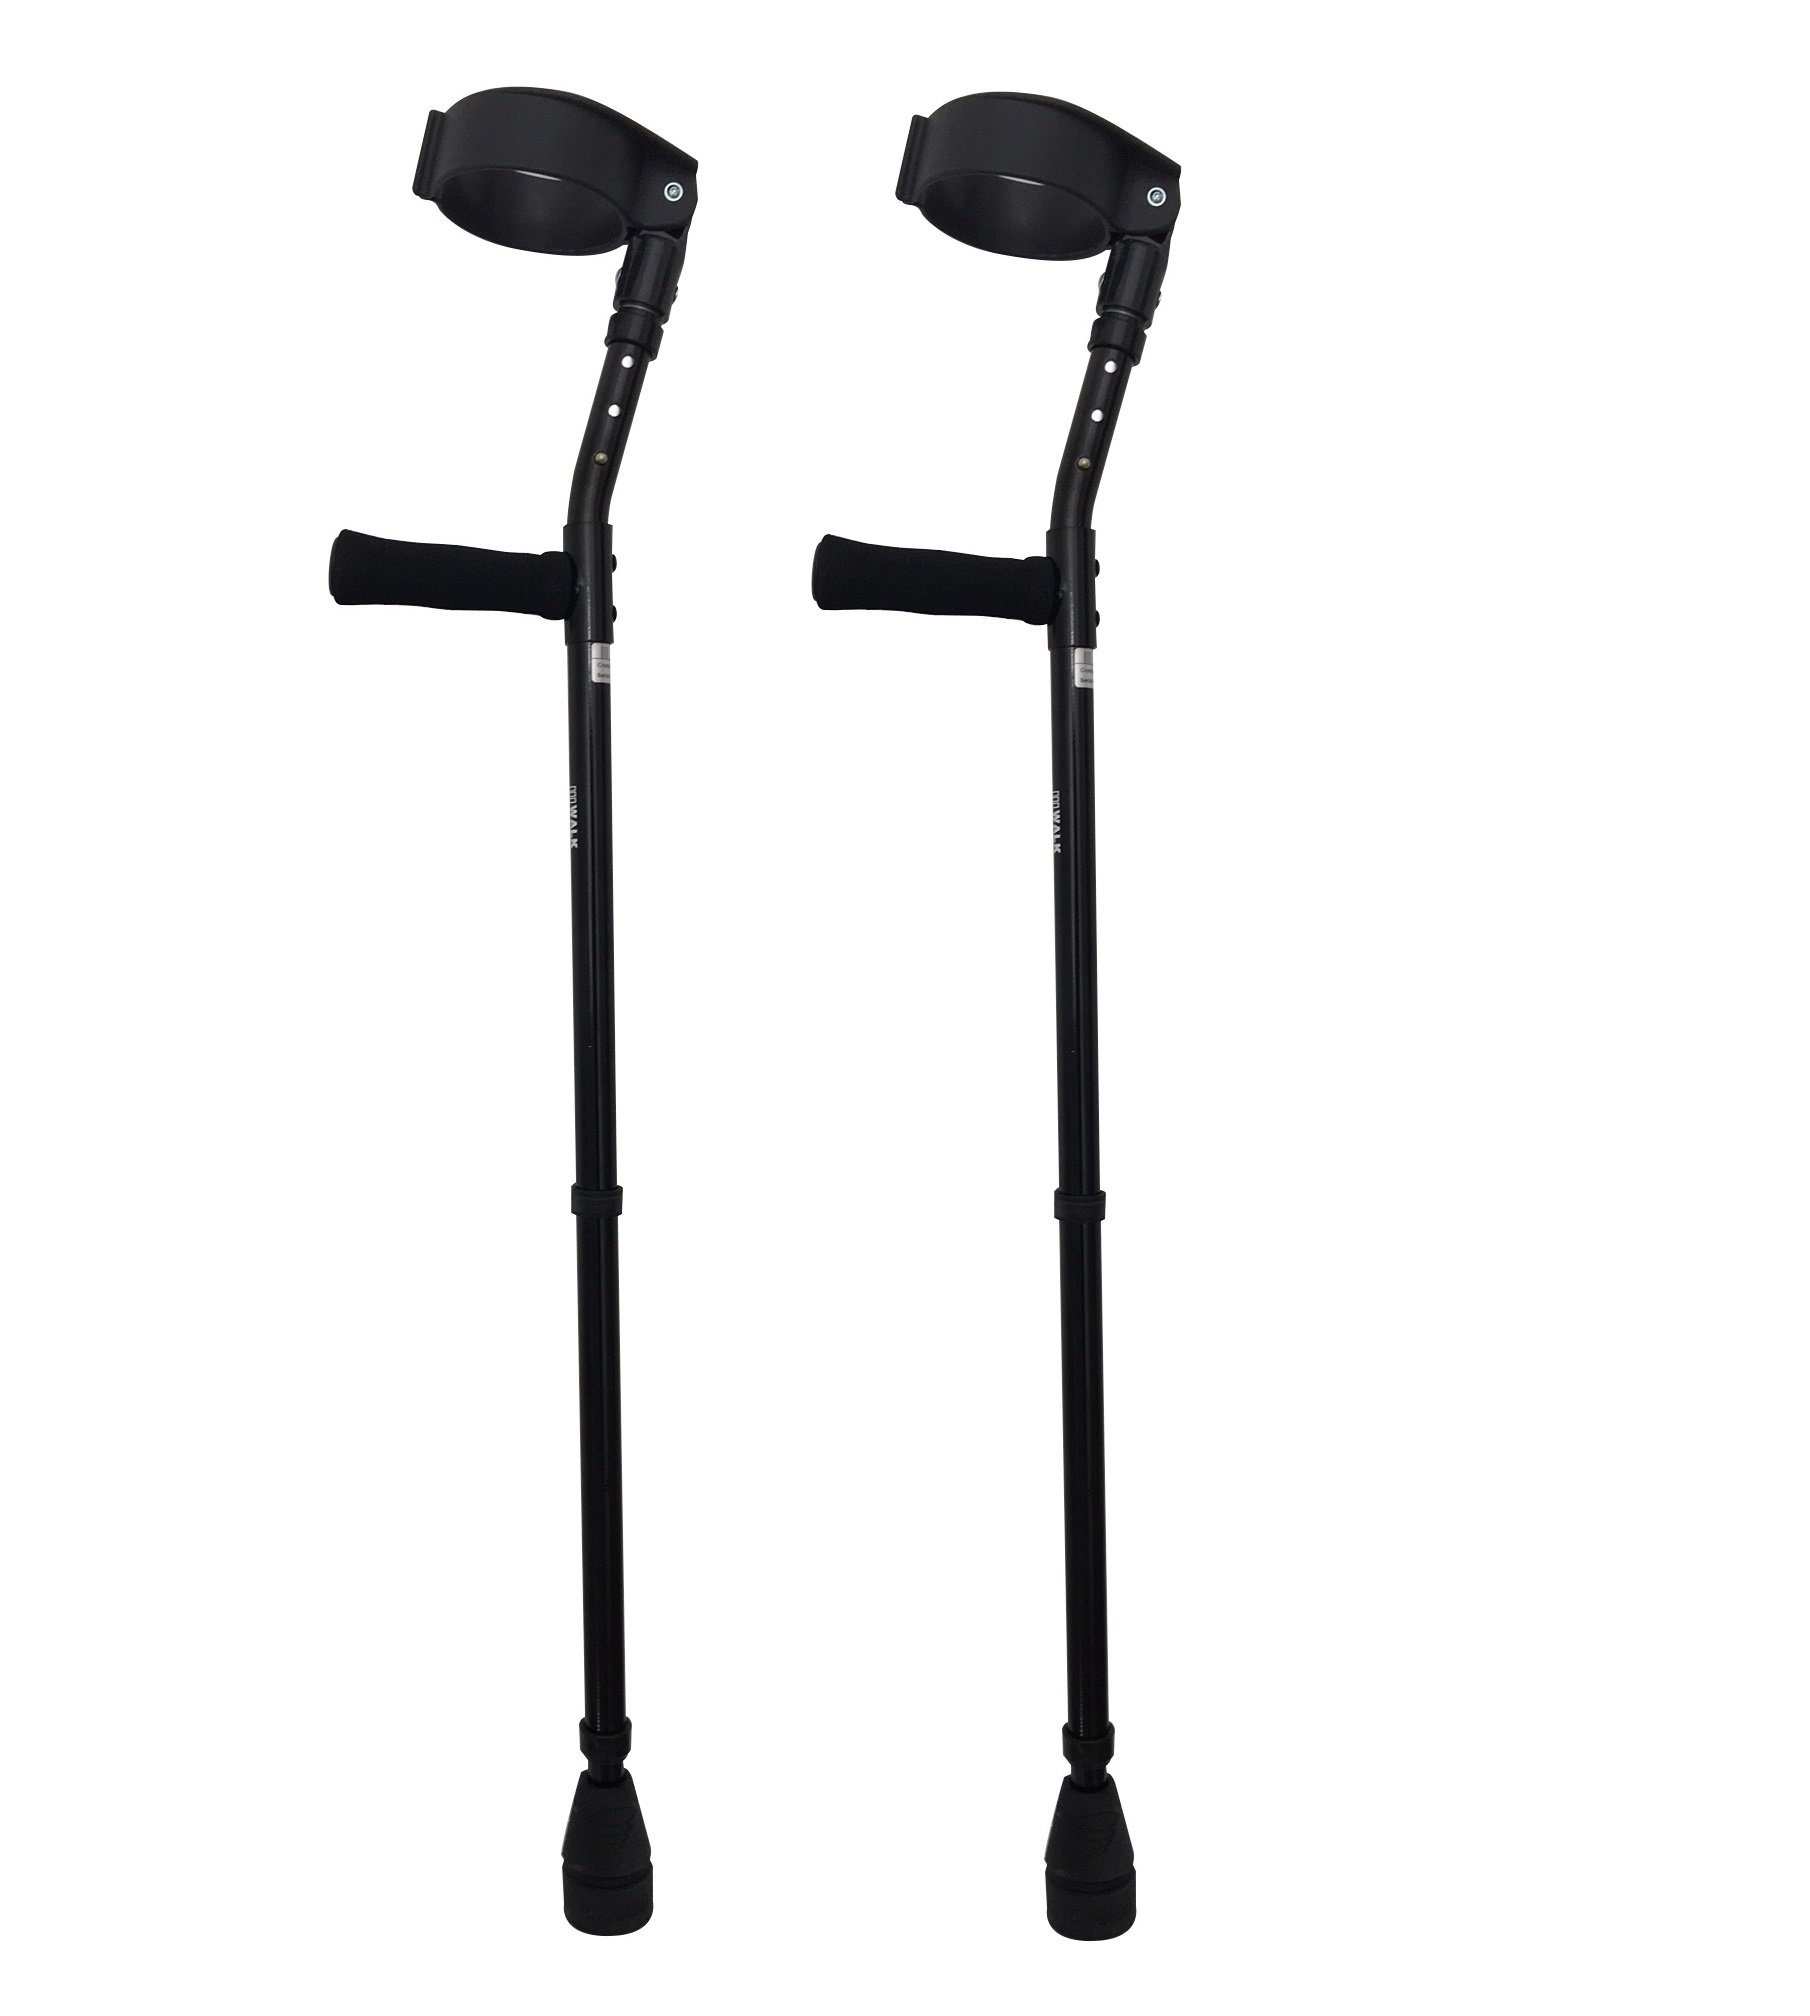 Thomas Fetterman Walk Easy 490 4'' Cuff Adjustable Forearm Crutches with Choice of Tips (Adjustable with Tornado Rain Tip)